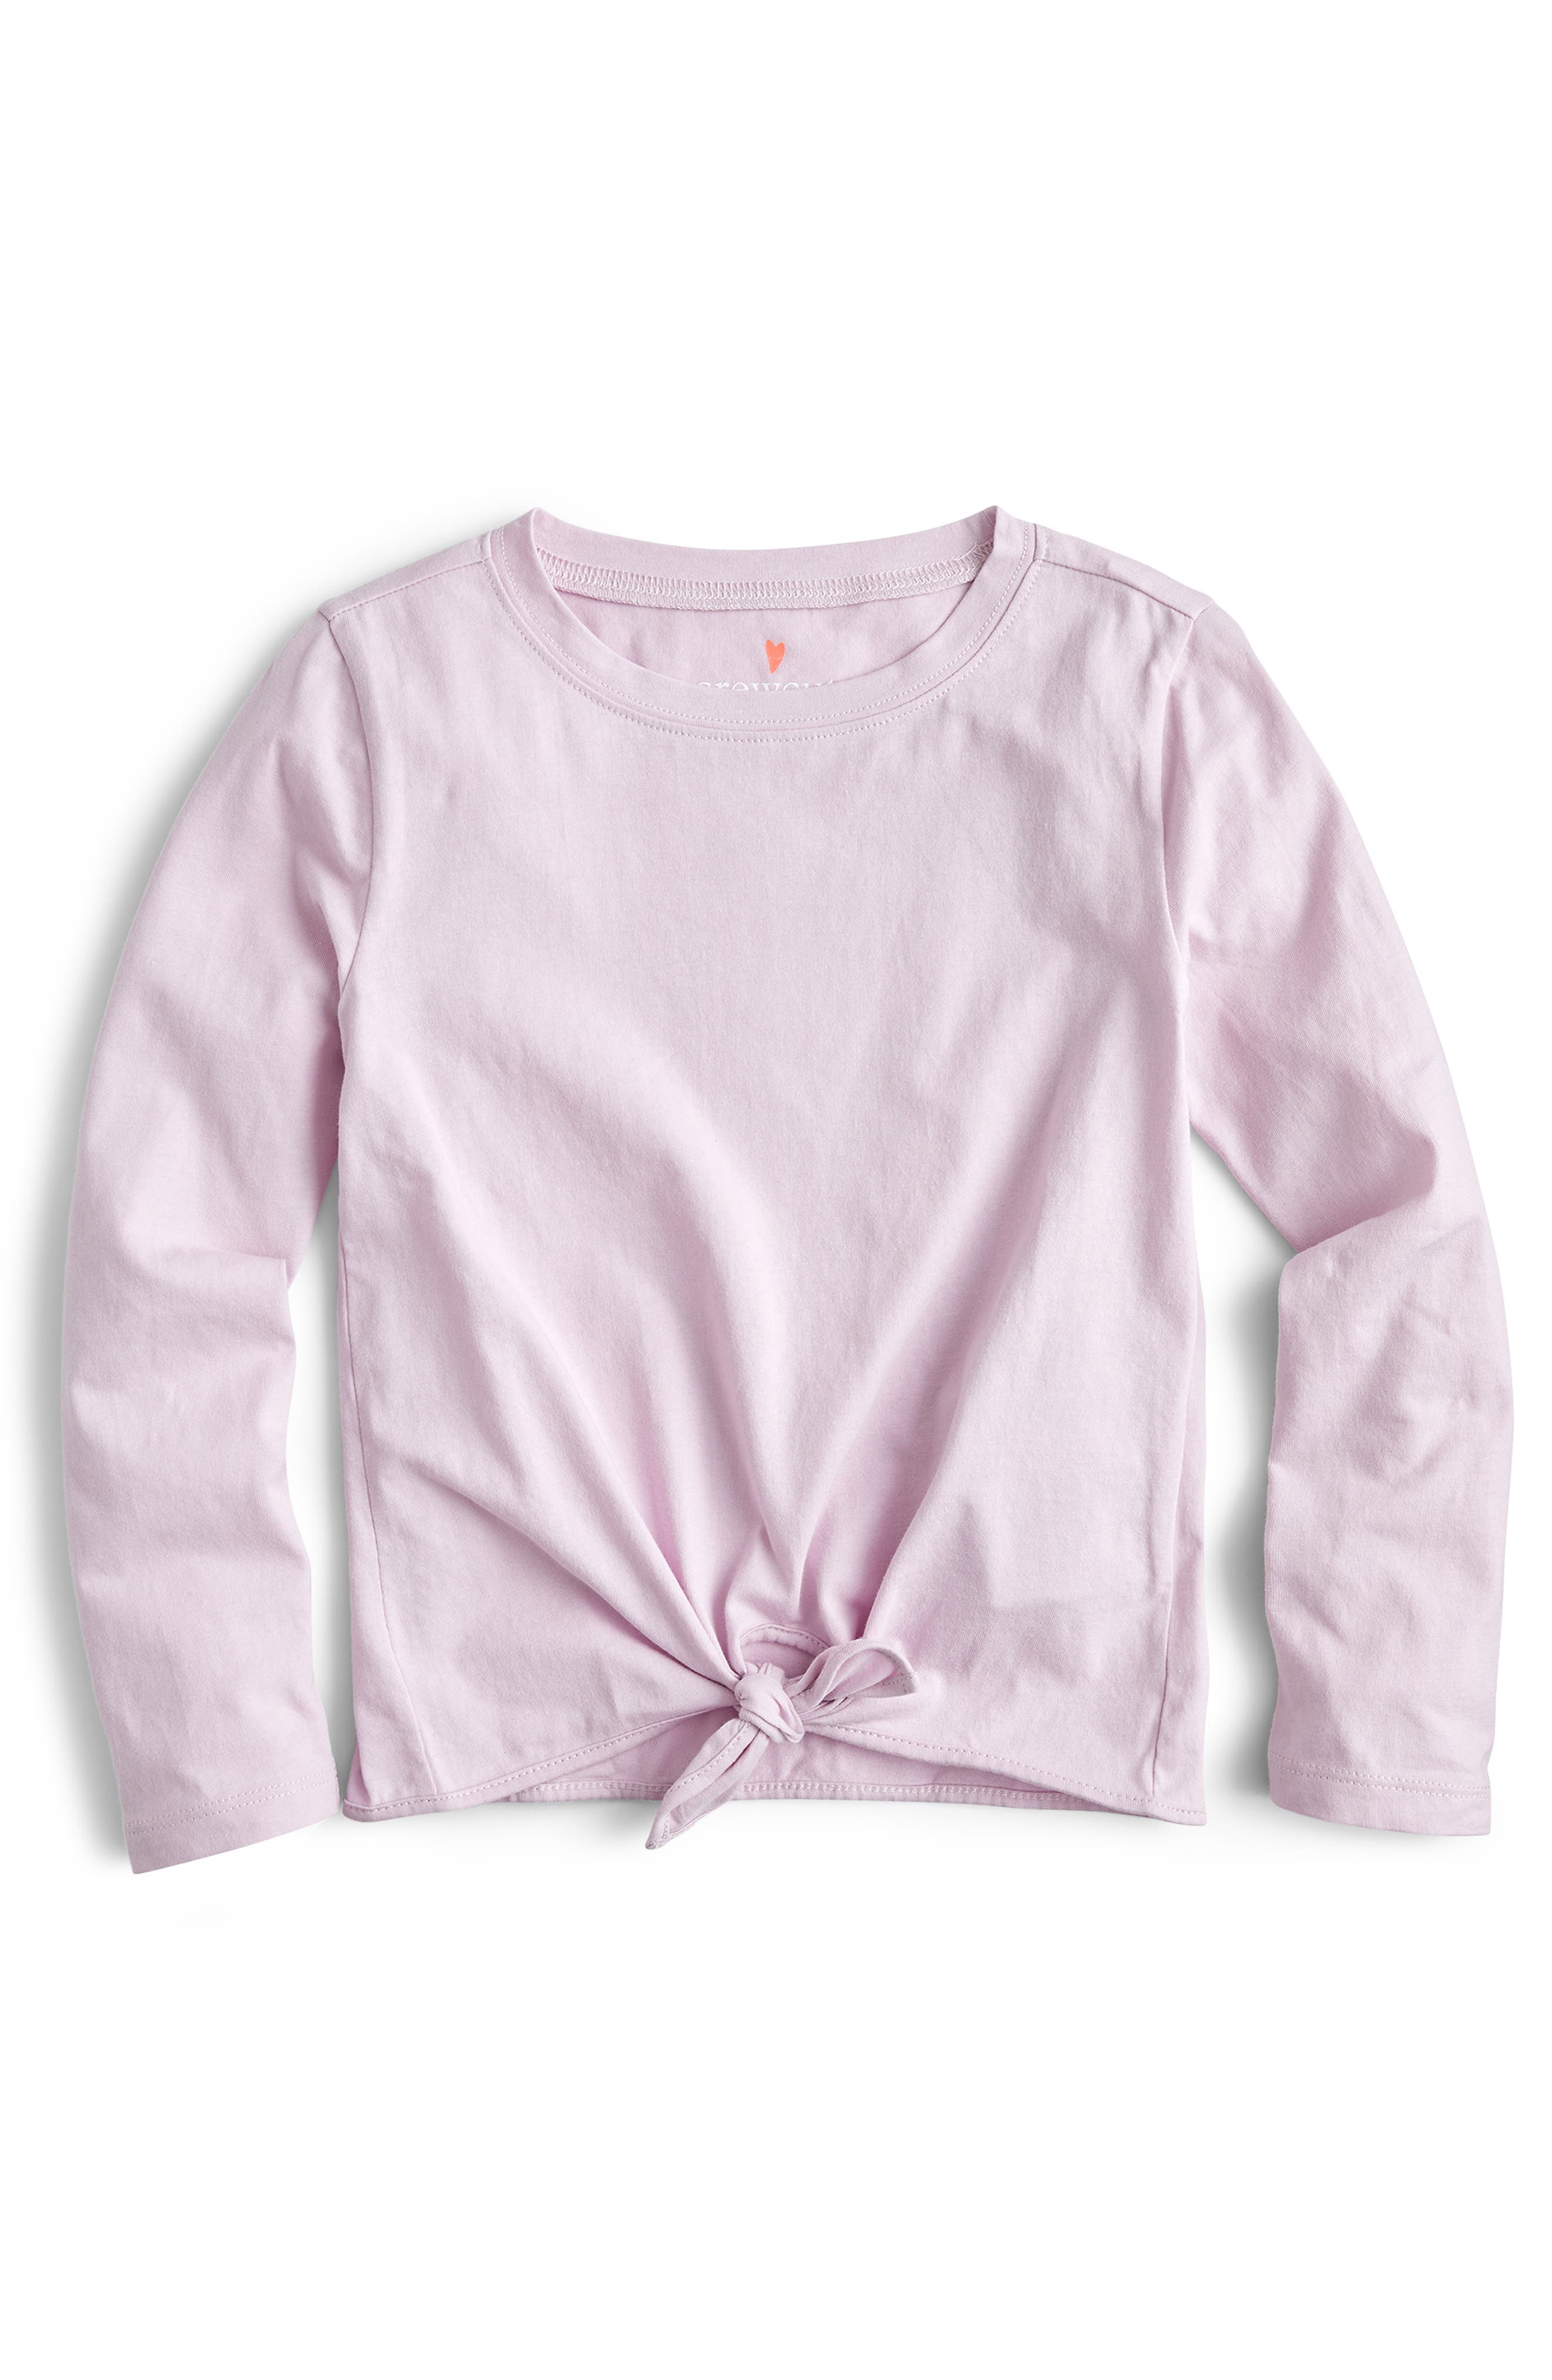 Toddler Girls Crewcuts By Jcrew Tie Front Long Sleeve Tee Size 3T  Purple